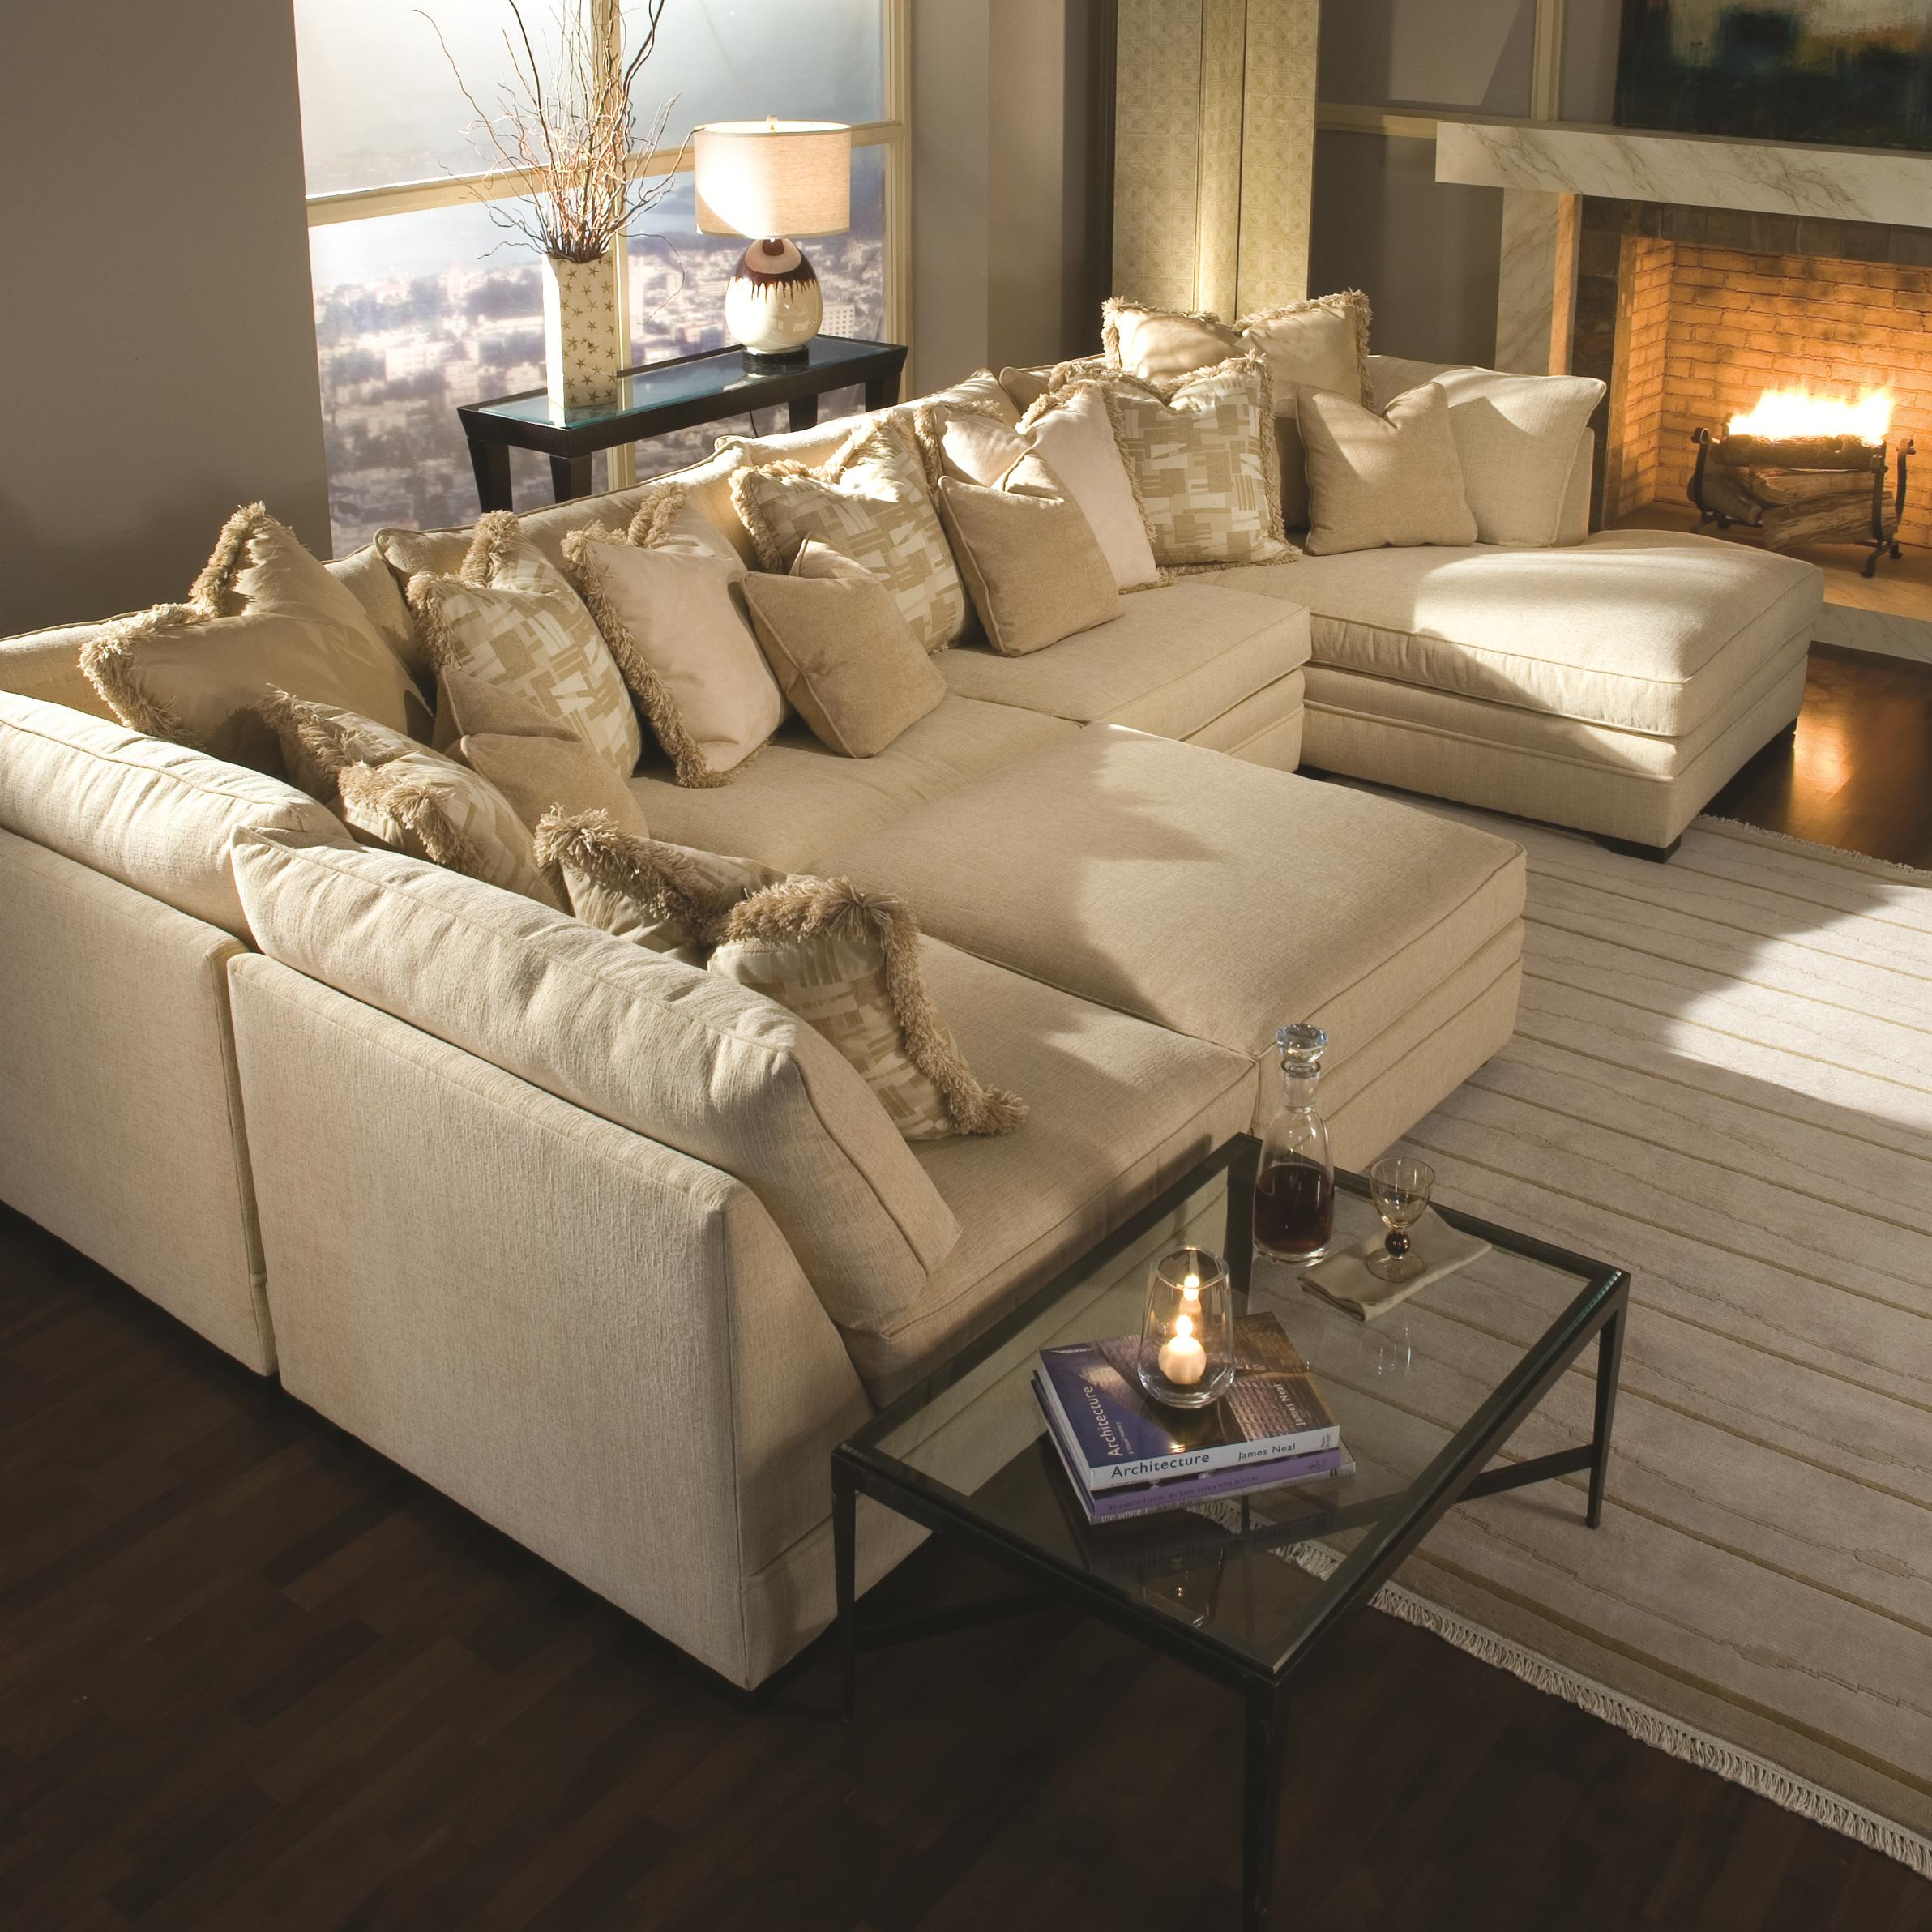 Unique Oversized Sectional Sofa 79 In Sofa Room Ideas with Oversized Sectional Sofa